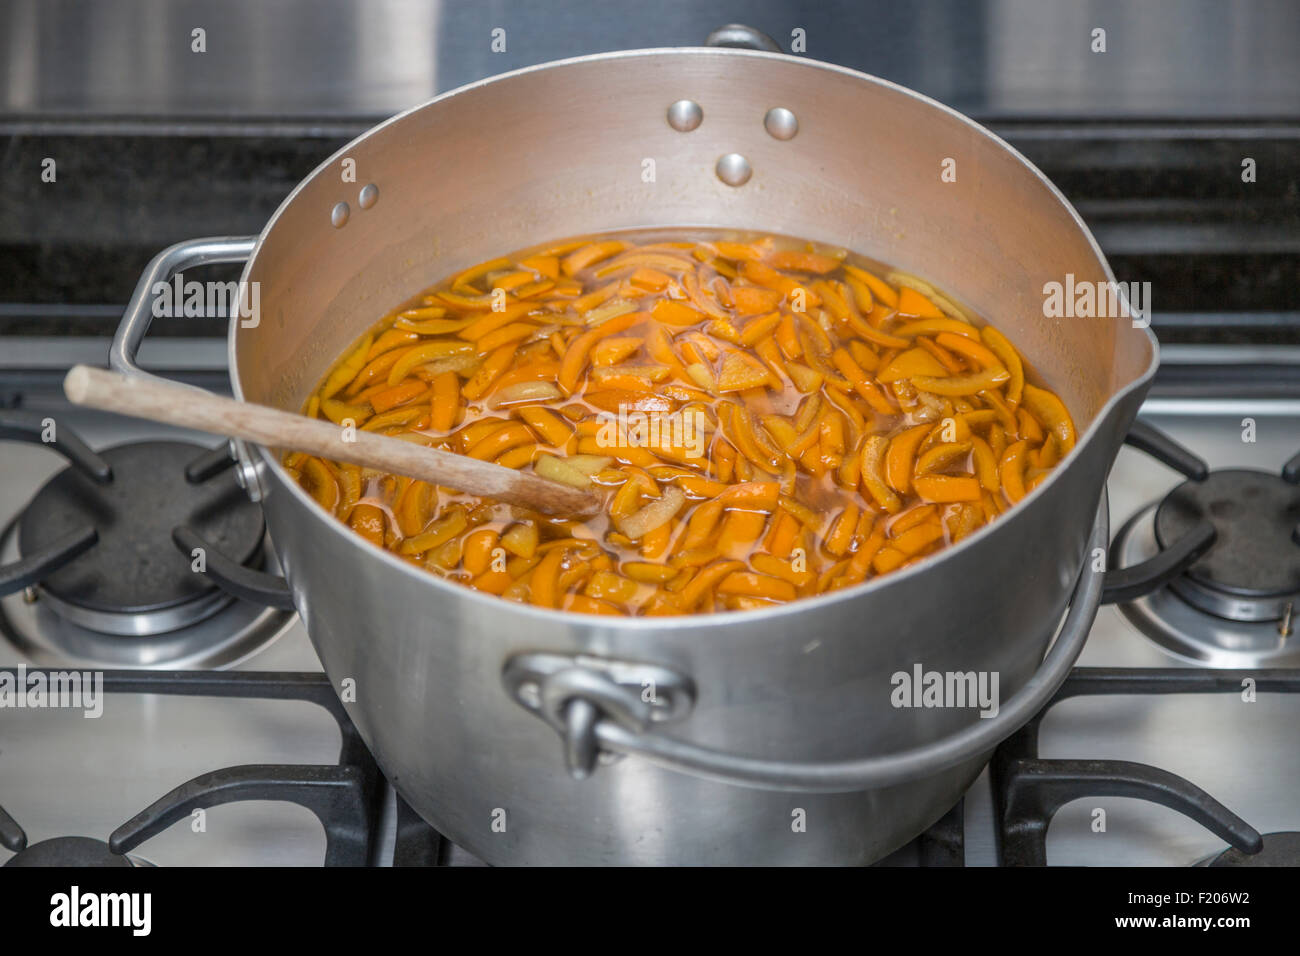 Sliced peeled oranges heating in a metal preserving pan on a gas hob in preparation for boiling to make home-made - Stock Image